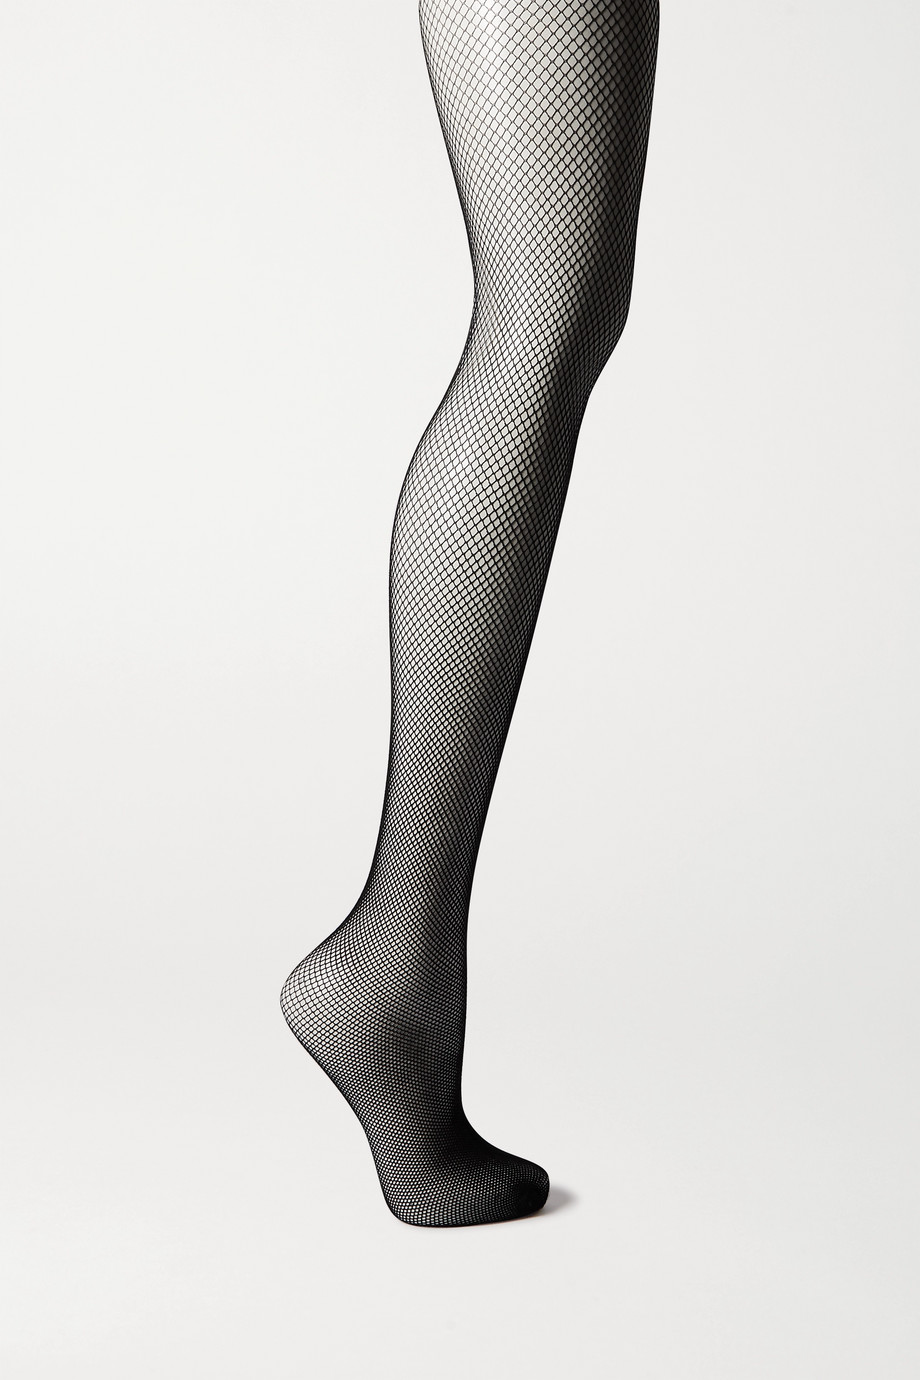 HEIST The Fishnet tights